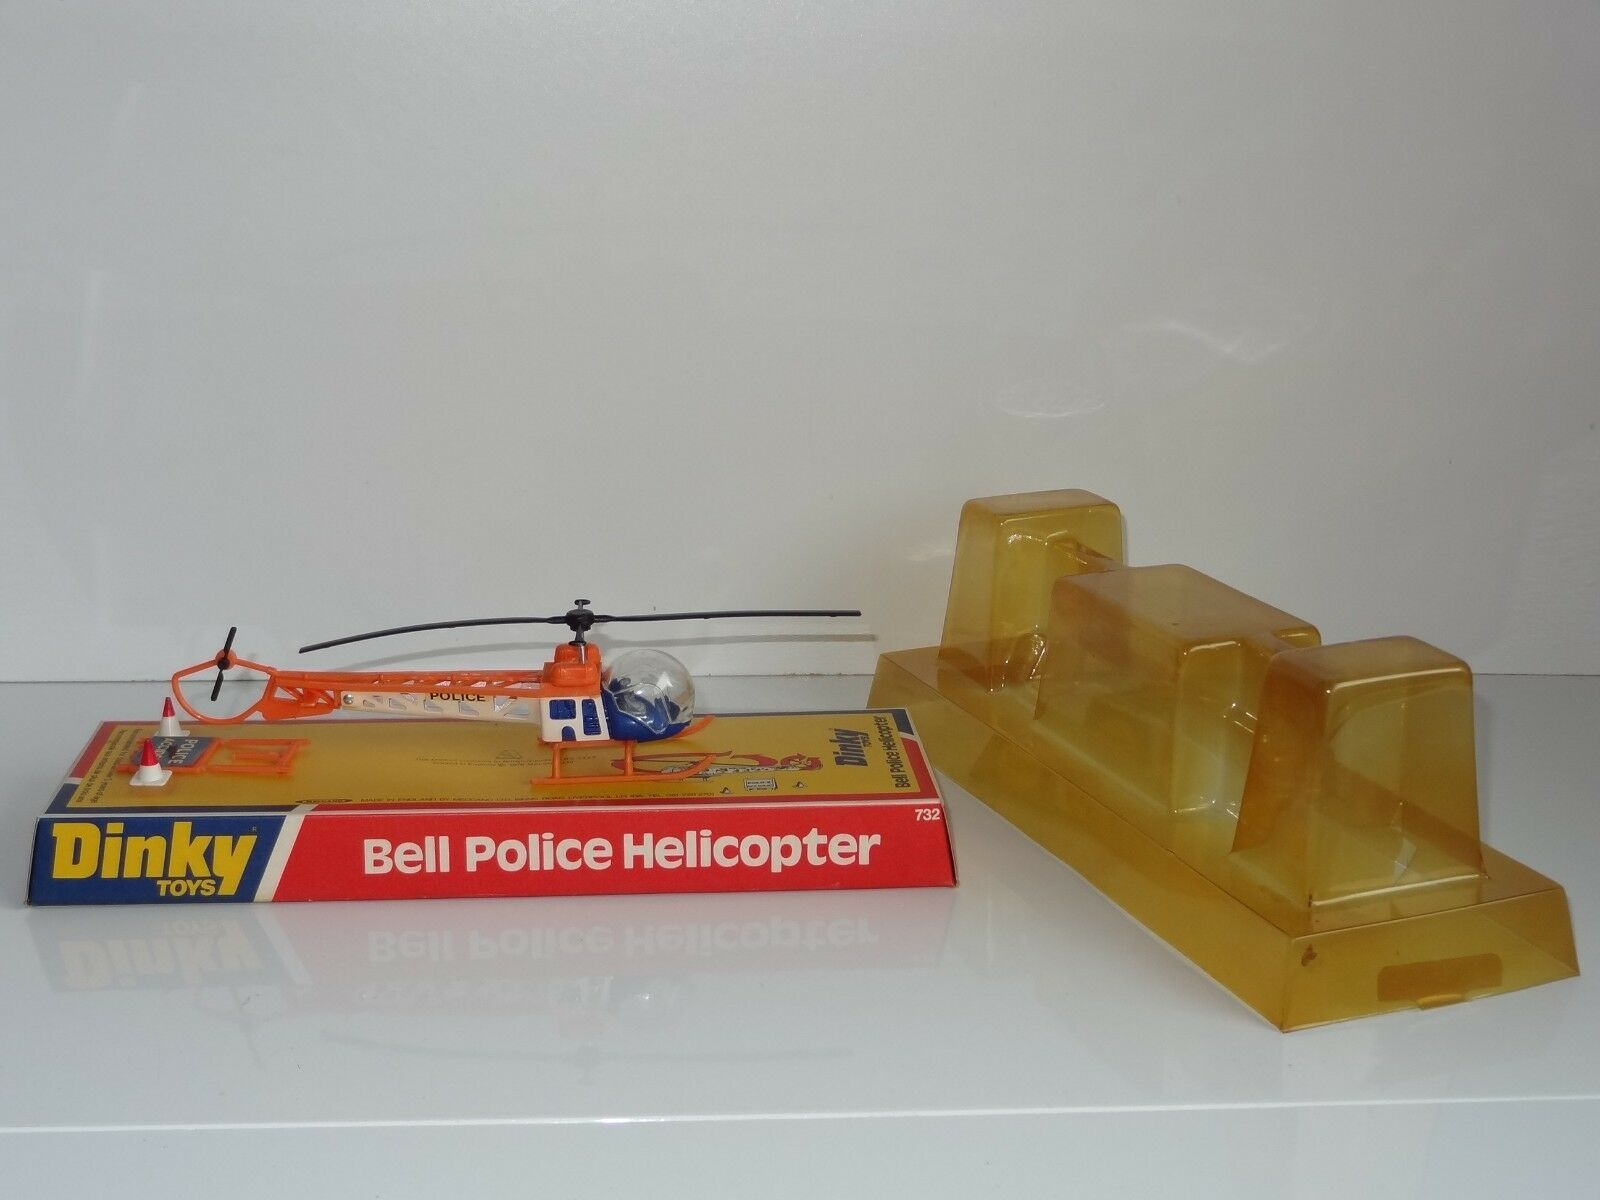 (W) dinky BELL POLICE HELICOPTER - 732